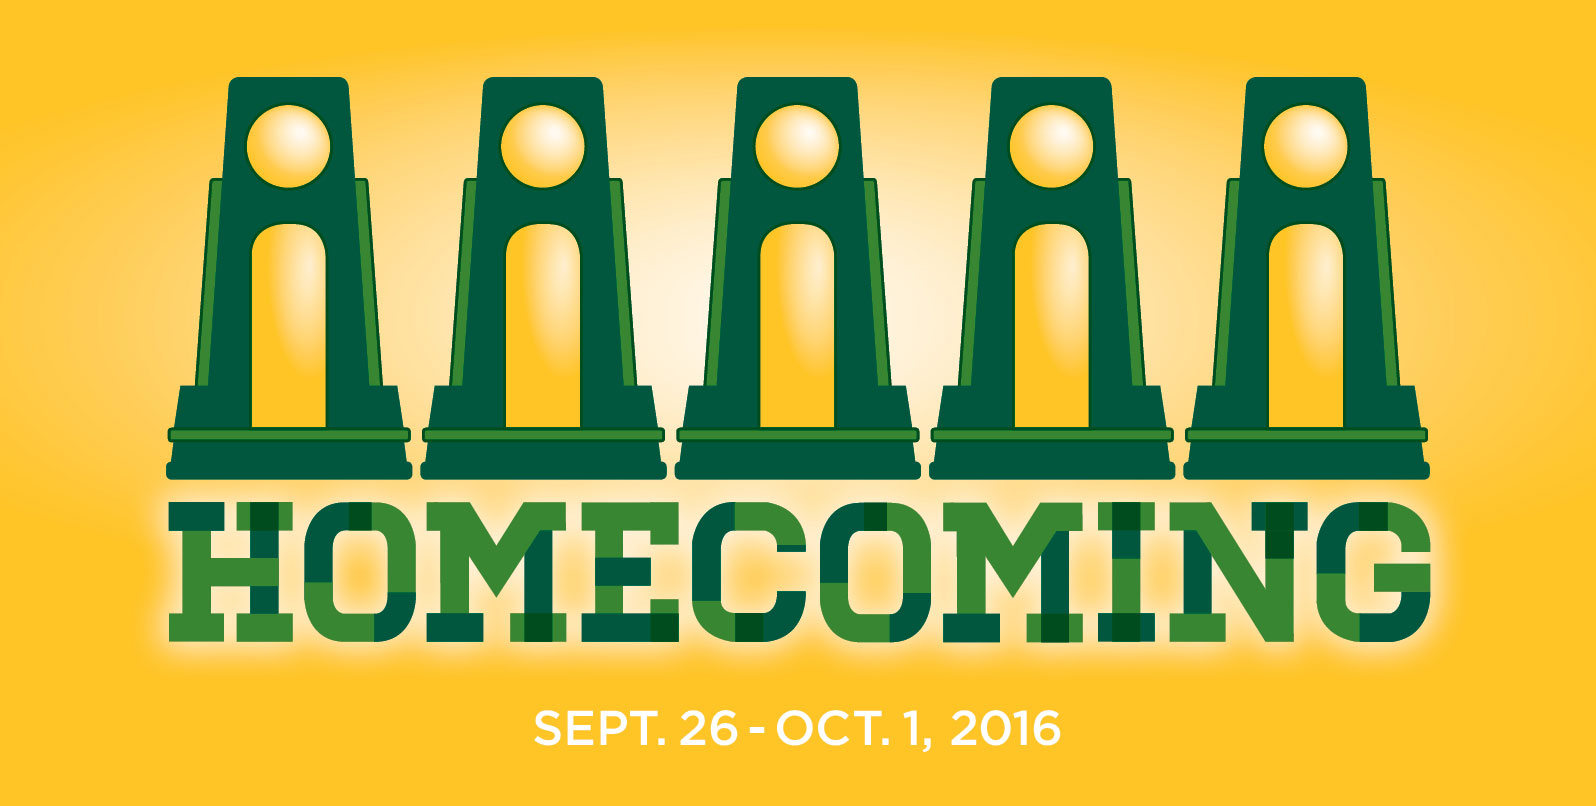 Homecoming 2016 - Sept. 26-Oct. 1 - click for more information